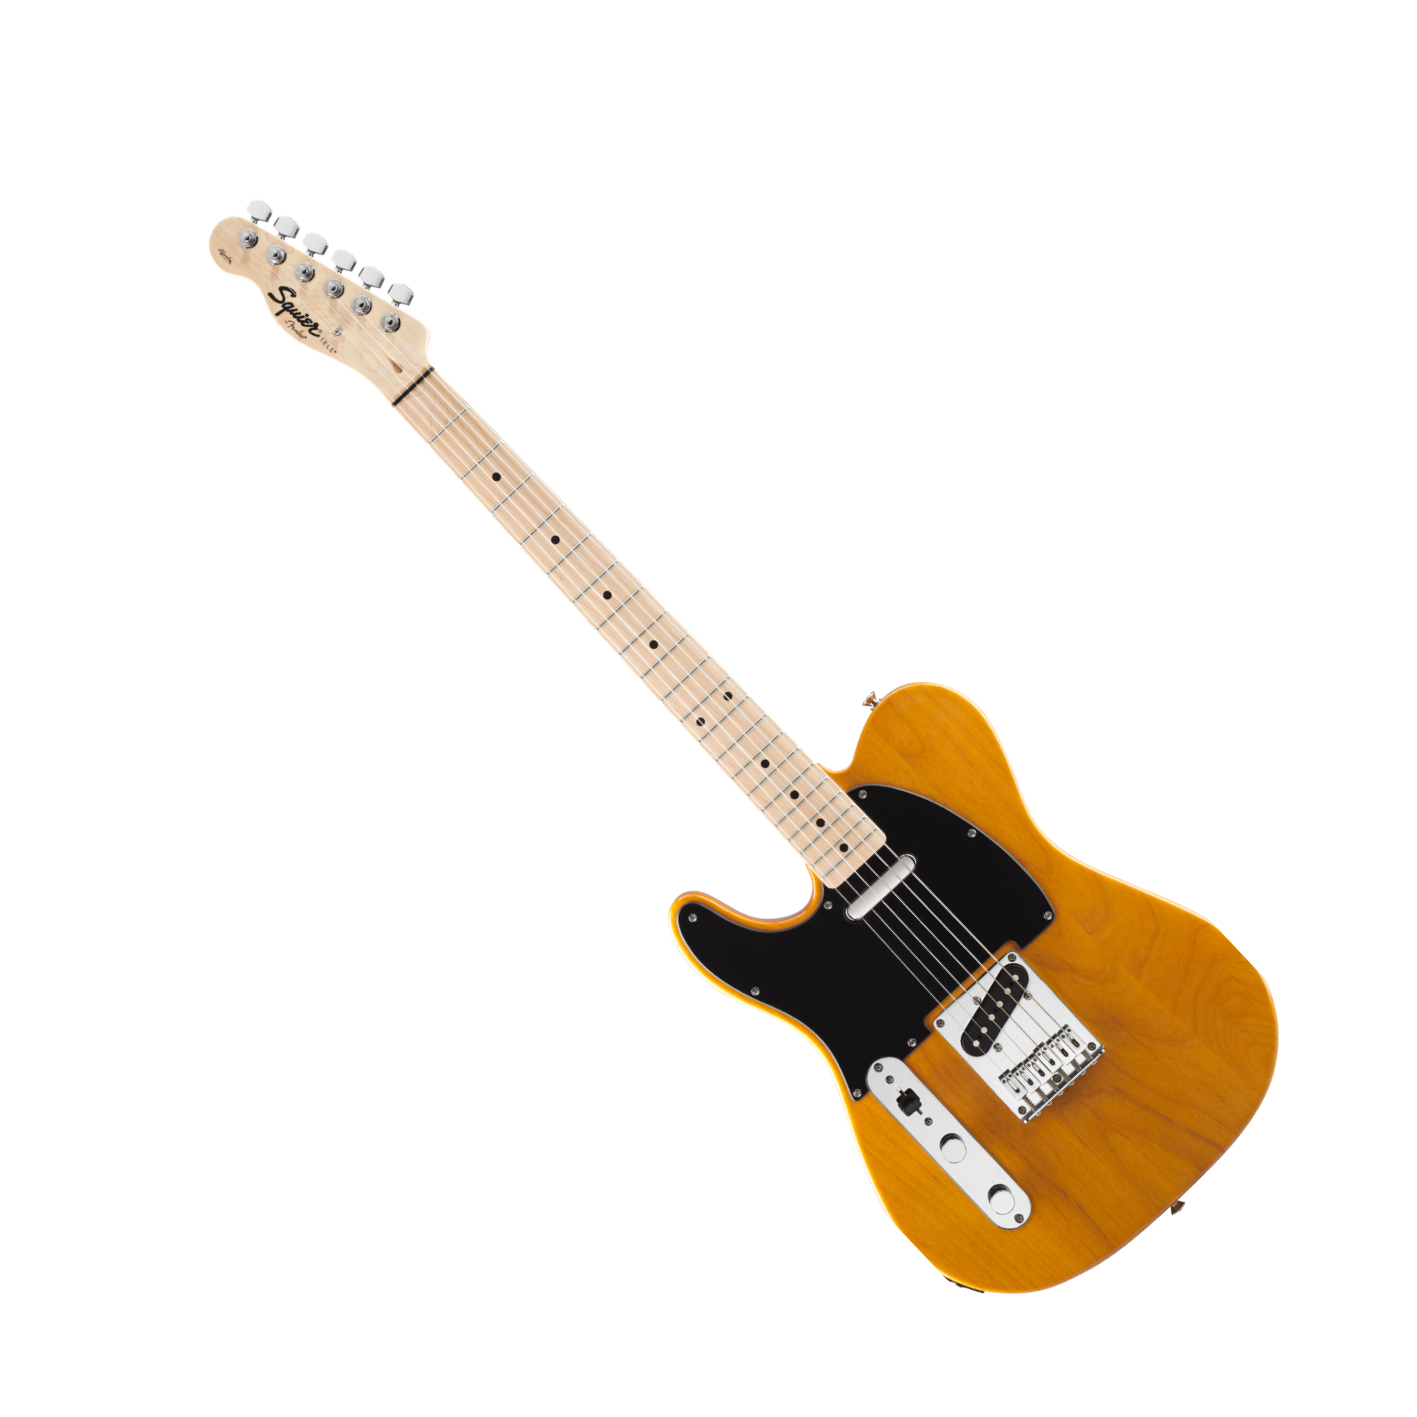 Squier Affinity Tele Left Hand Butterscotch Blonde